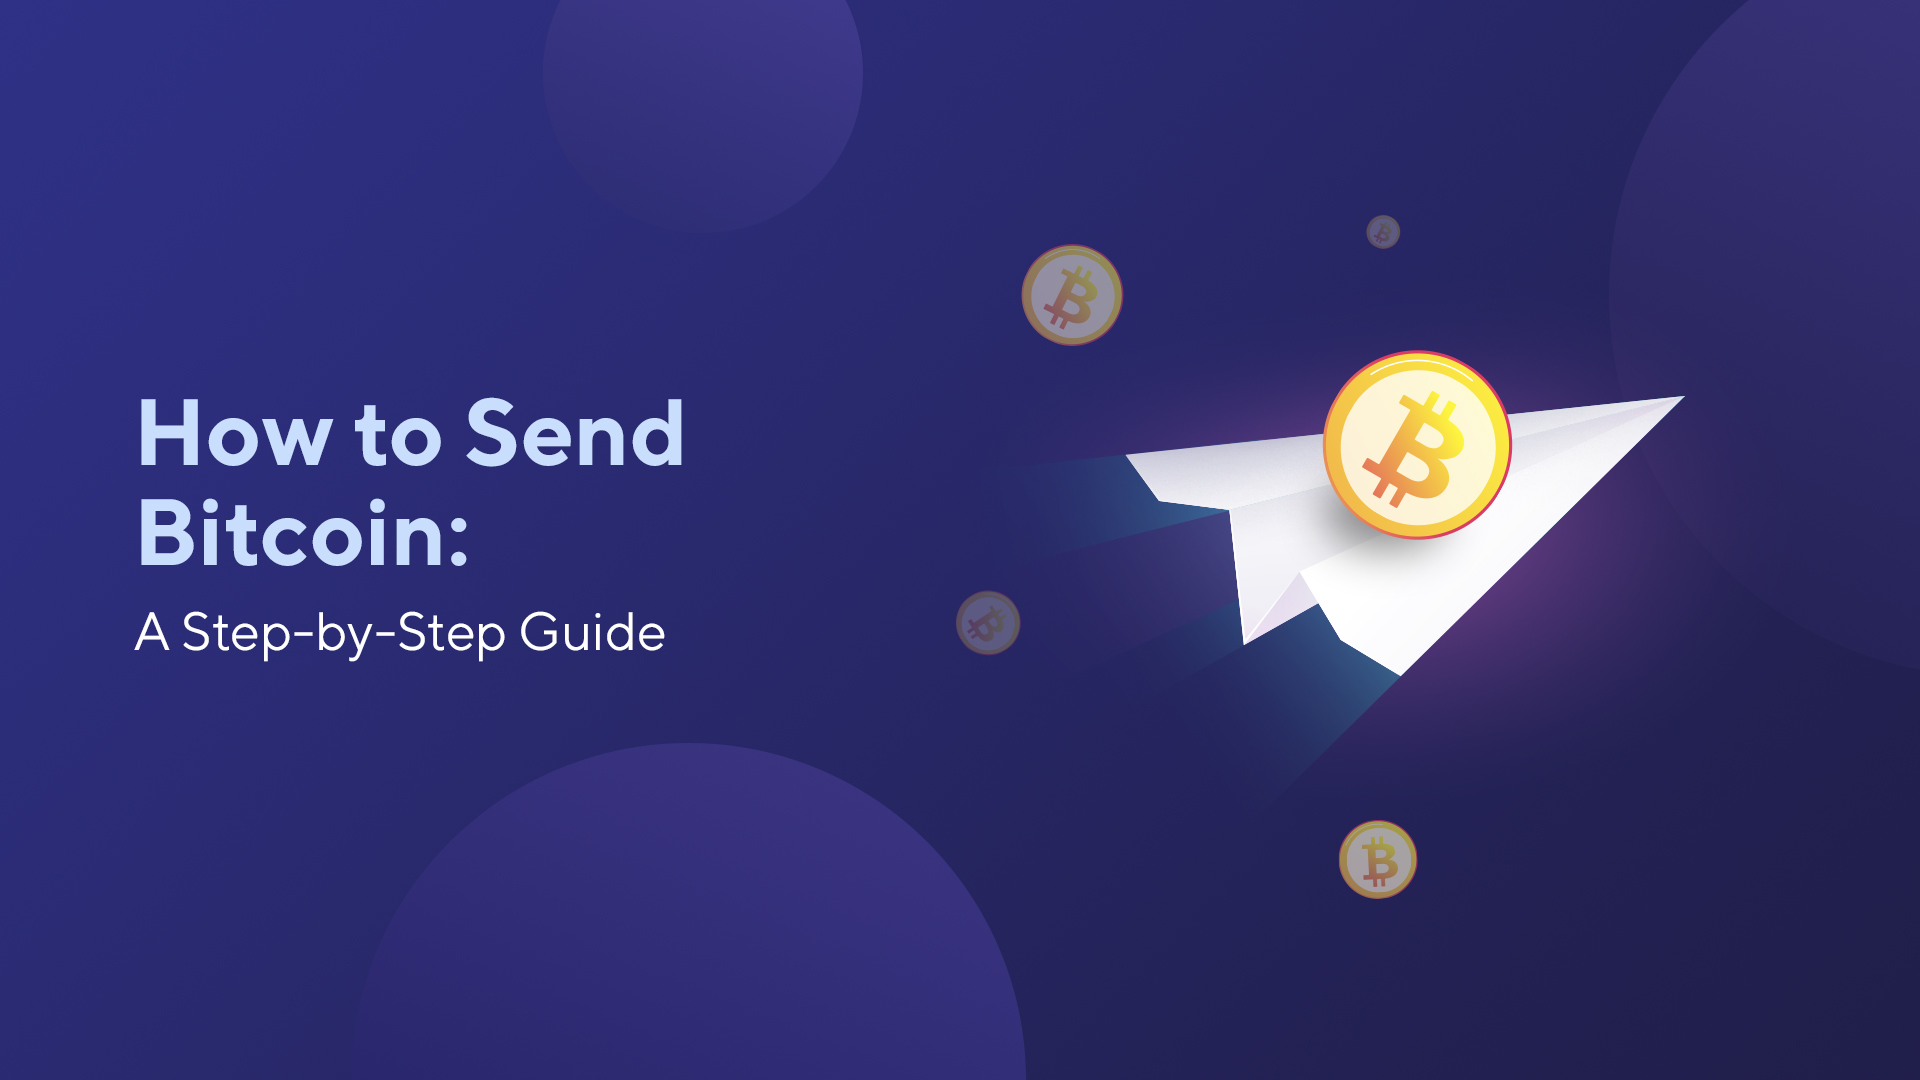 How to Send Bitcoin: A Step-by-Step Guide